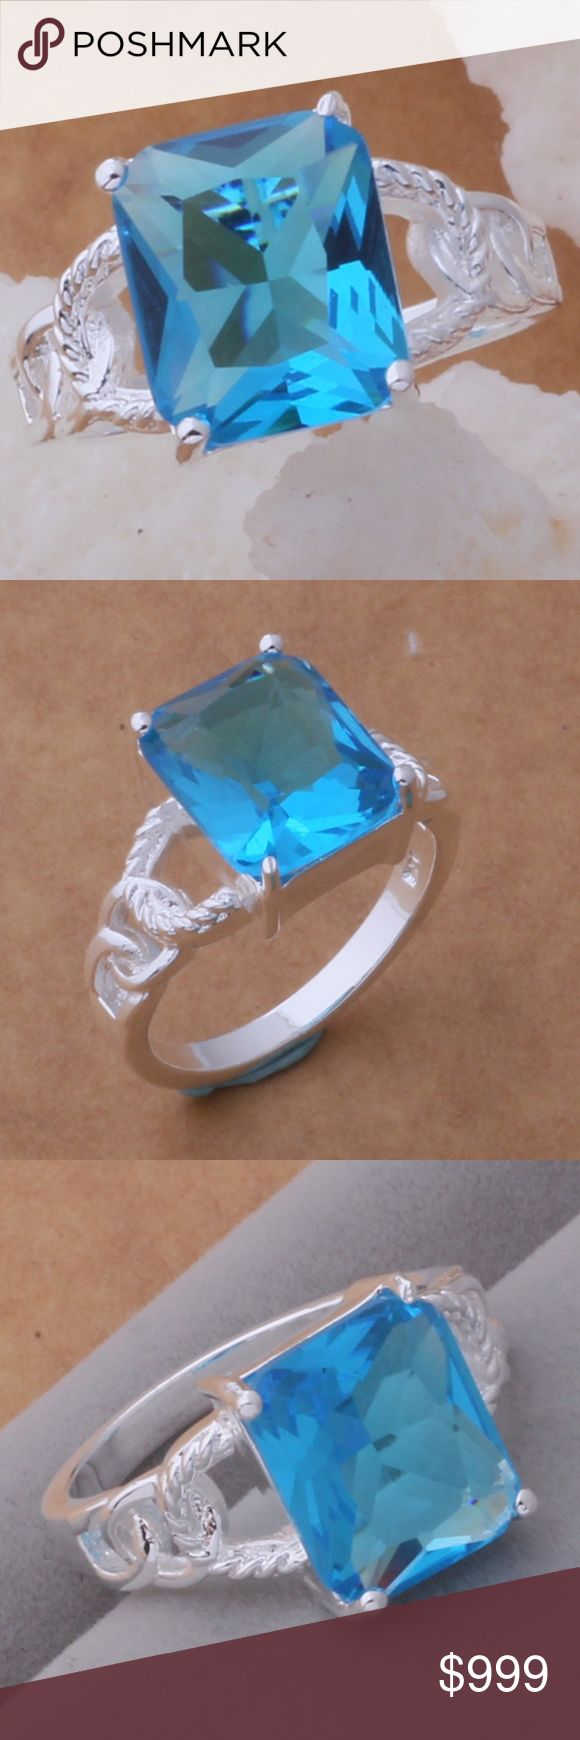 """COMING SOON!! Sterling Silver Blue CZ Ring Coming Soon!! (Price available upon arrival). Brand new in original packaging.  Beautiful 925 stamped sterling silver statement cocktail ring featuring an emerald brilliant cut sky blue cubic zircon crystal stone set in a 4 prong tension mount setting on an exquisite, elegantly designed band.  Size 8. Weight: 5.4g.  """"Like"""" to be notified of arrival! Jewelry Rings"""